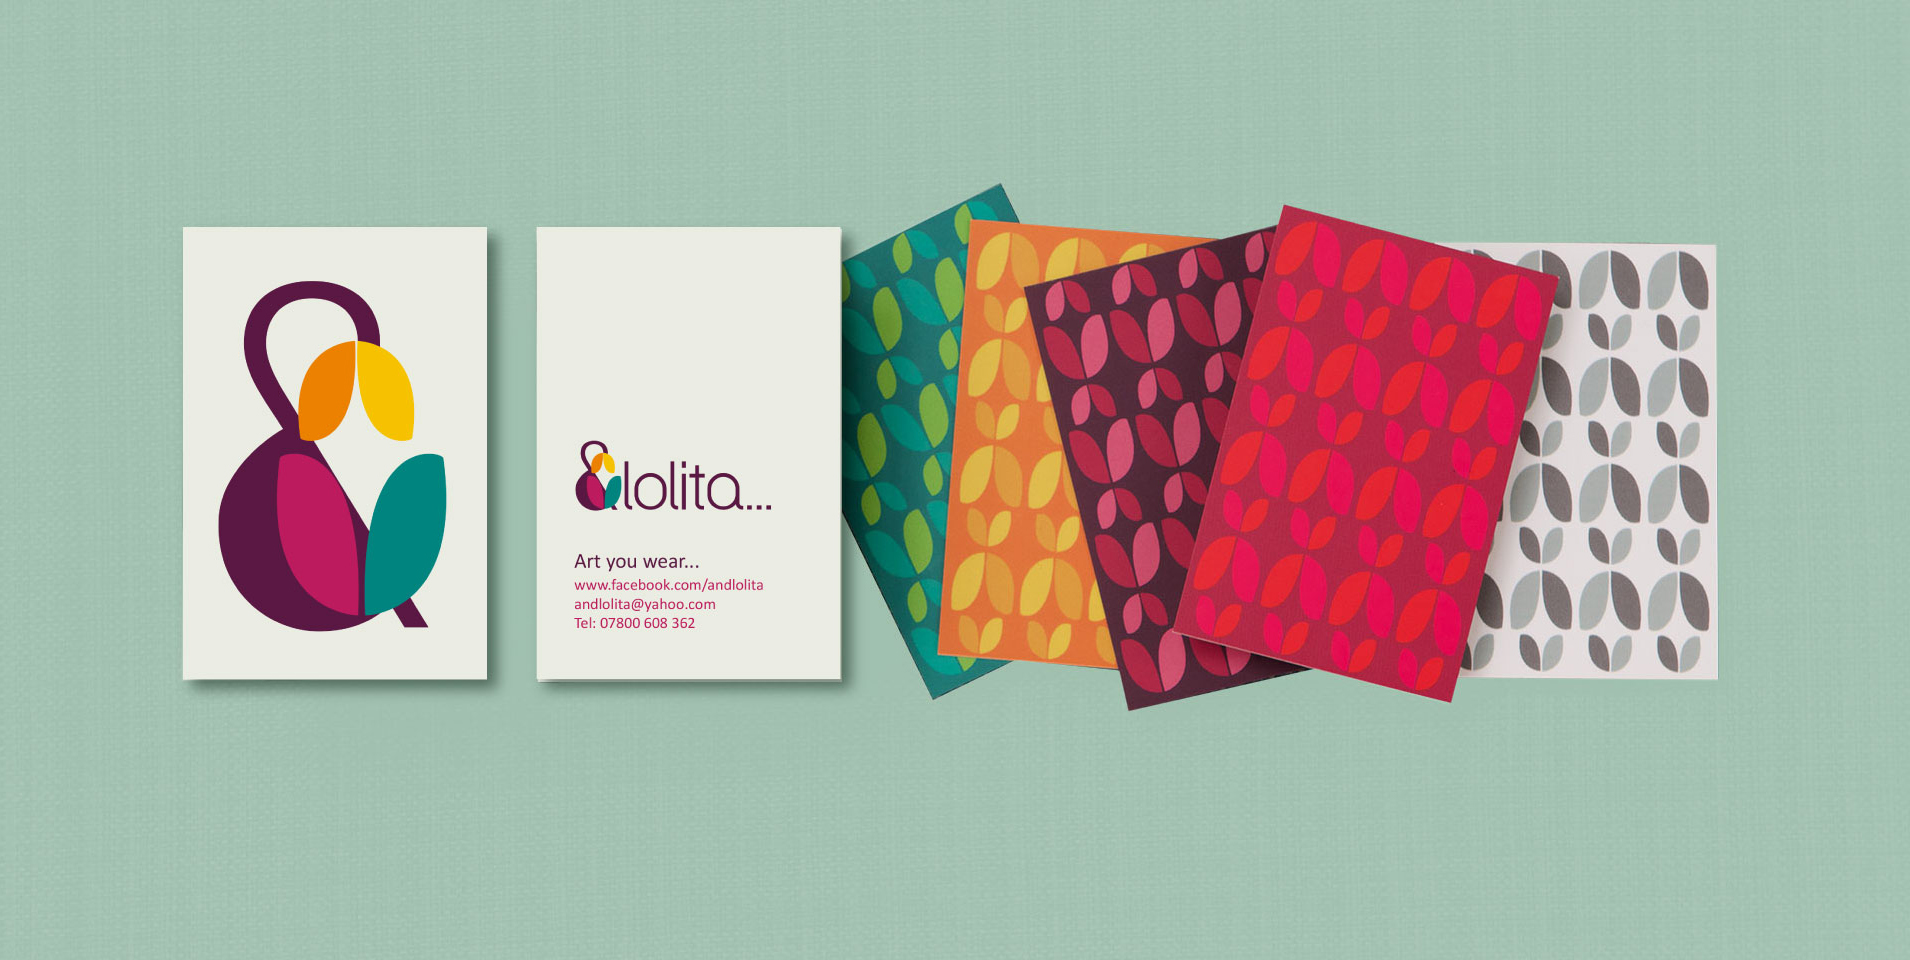 &Lolita Business cards with colourful graphic tulip design